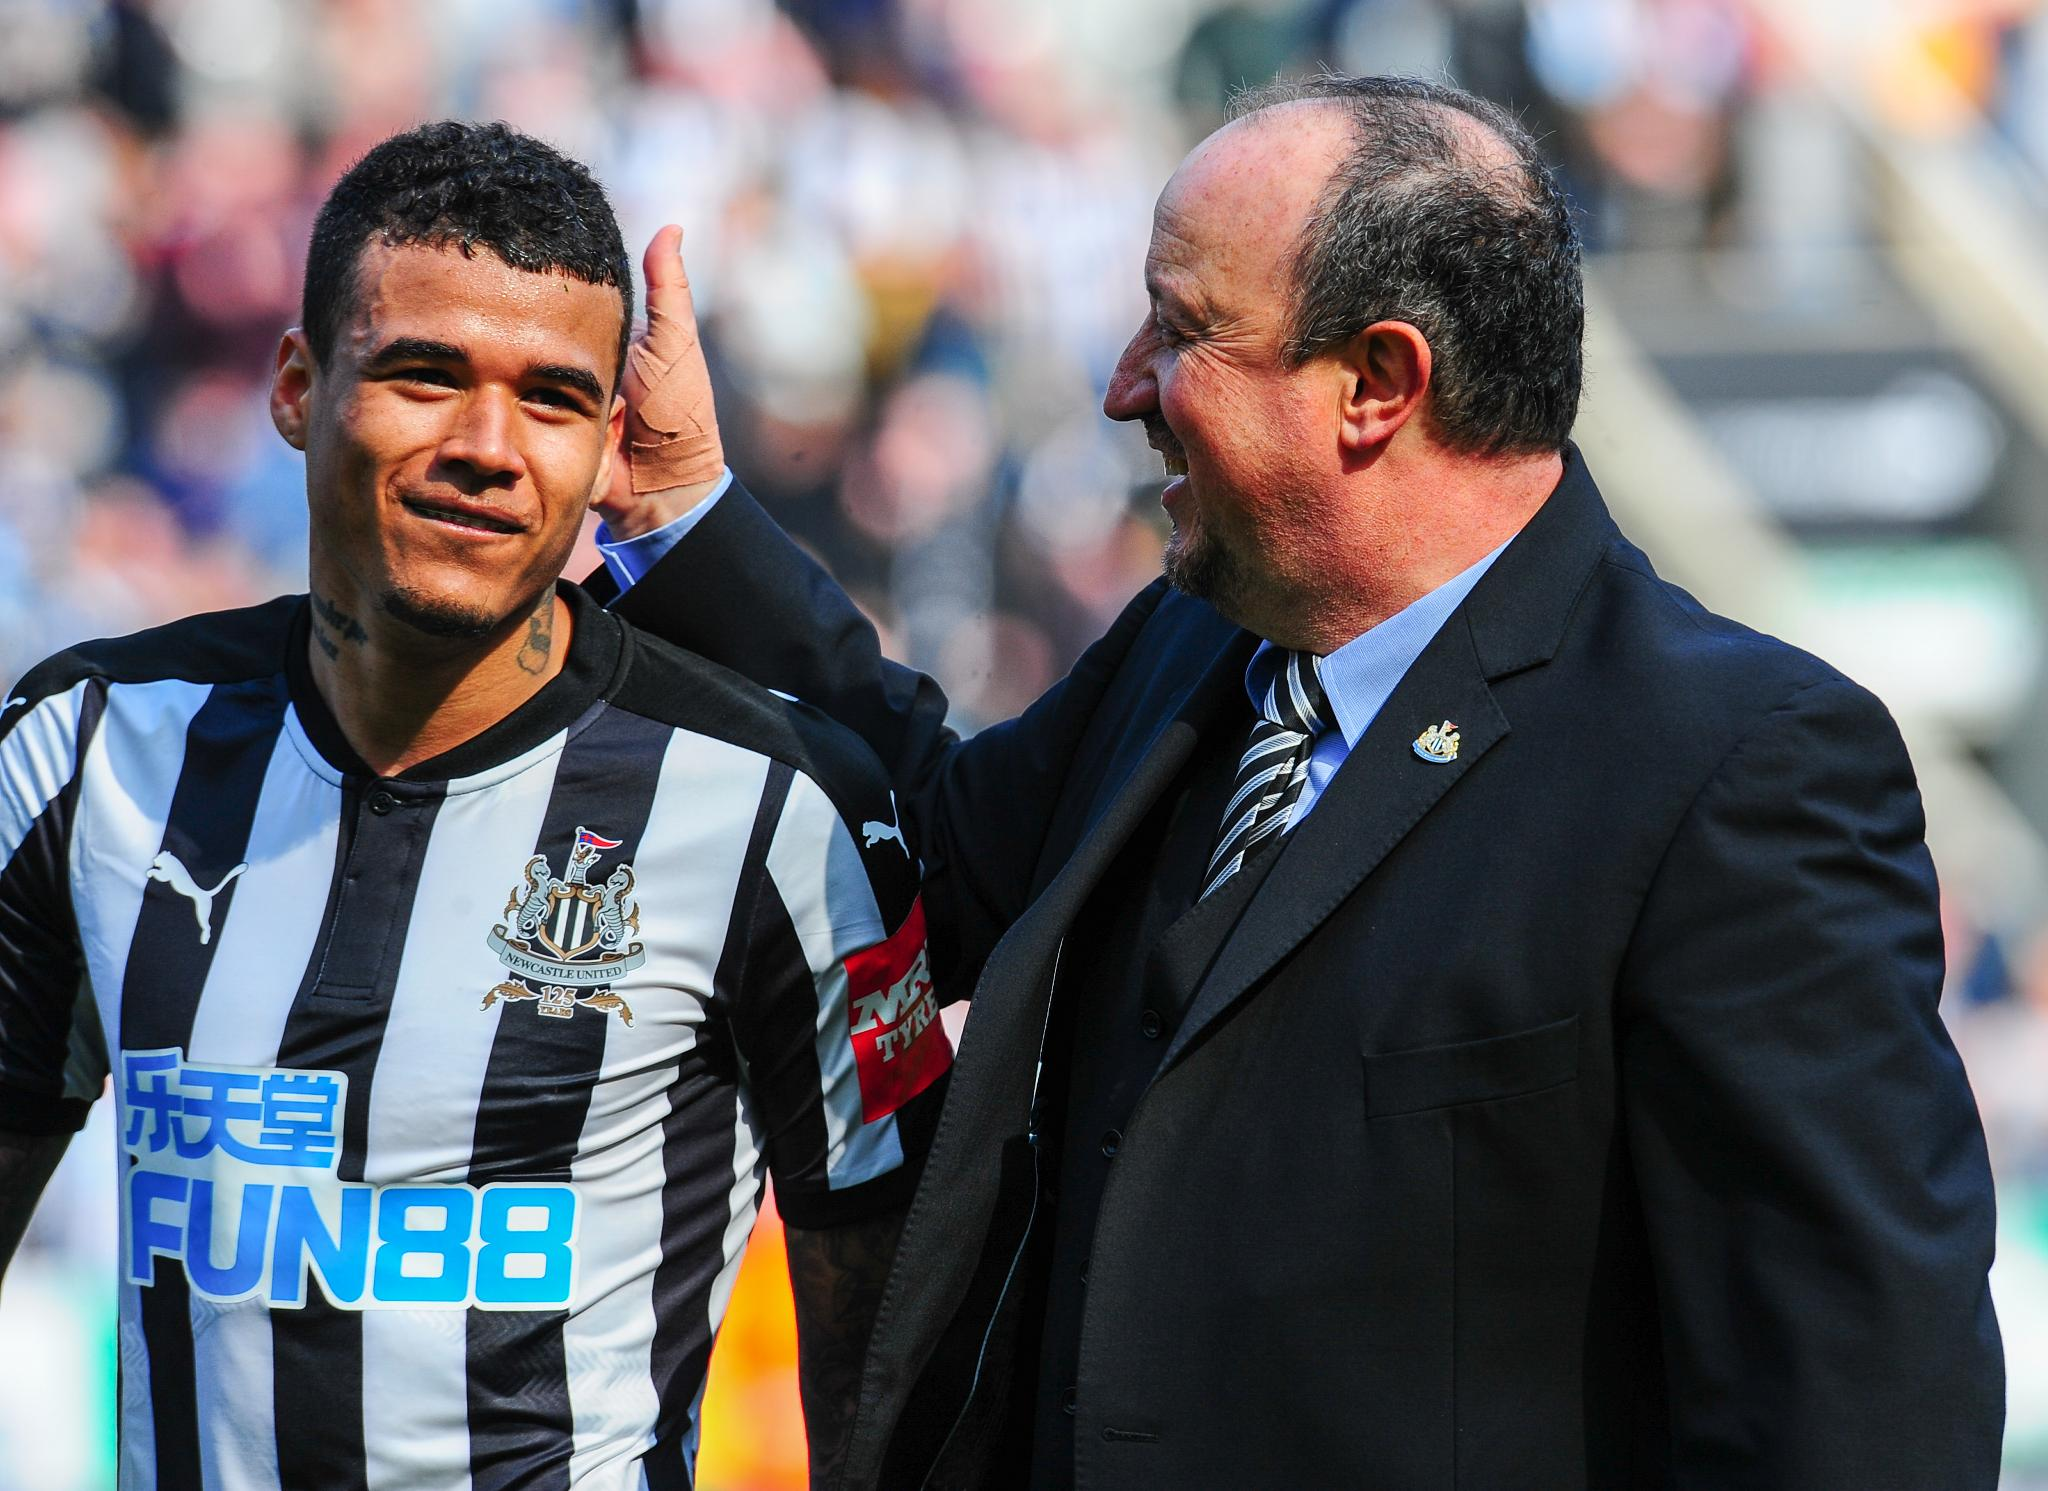 Brazilian winger Kenedy has rejoined @NUFC from Chelsea on loan  Full story: https://t.co/7iEIiG8Q0d https://t.co/uQFZ1bSFlR